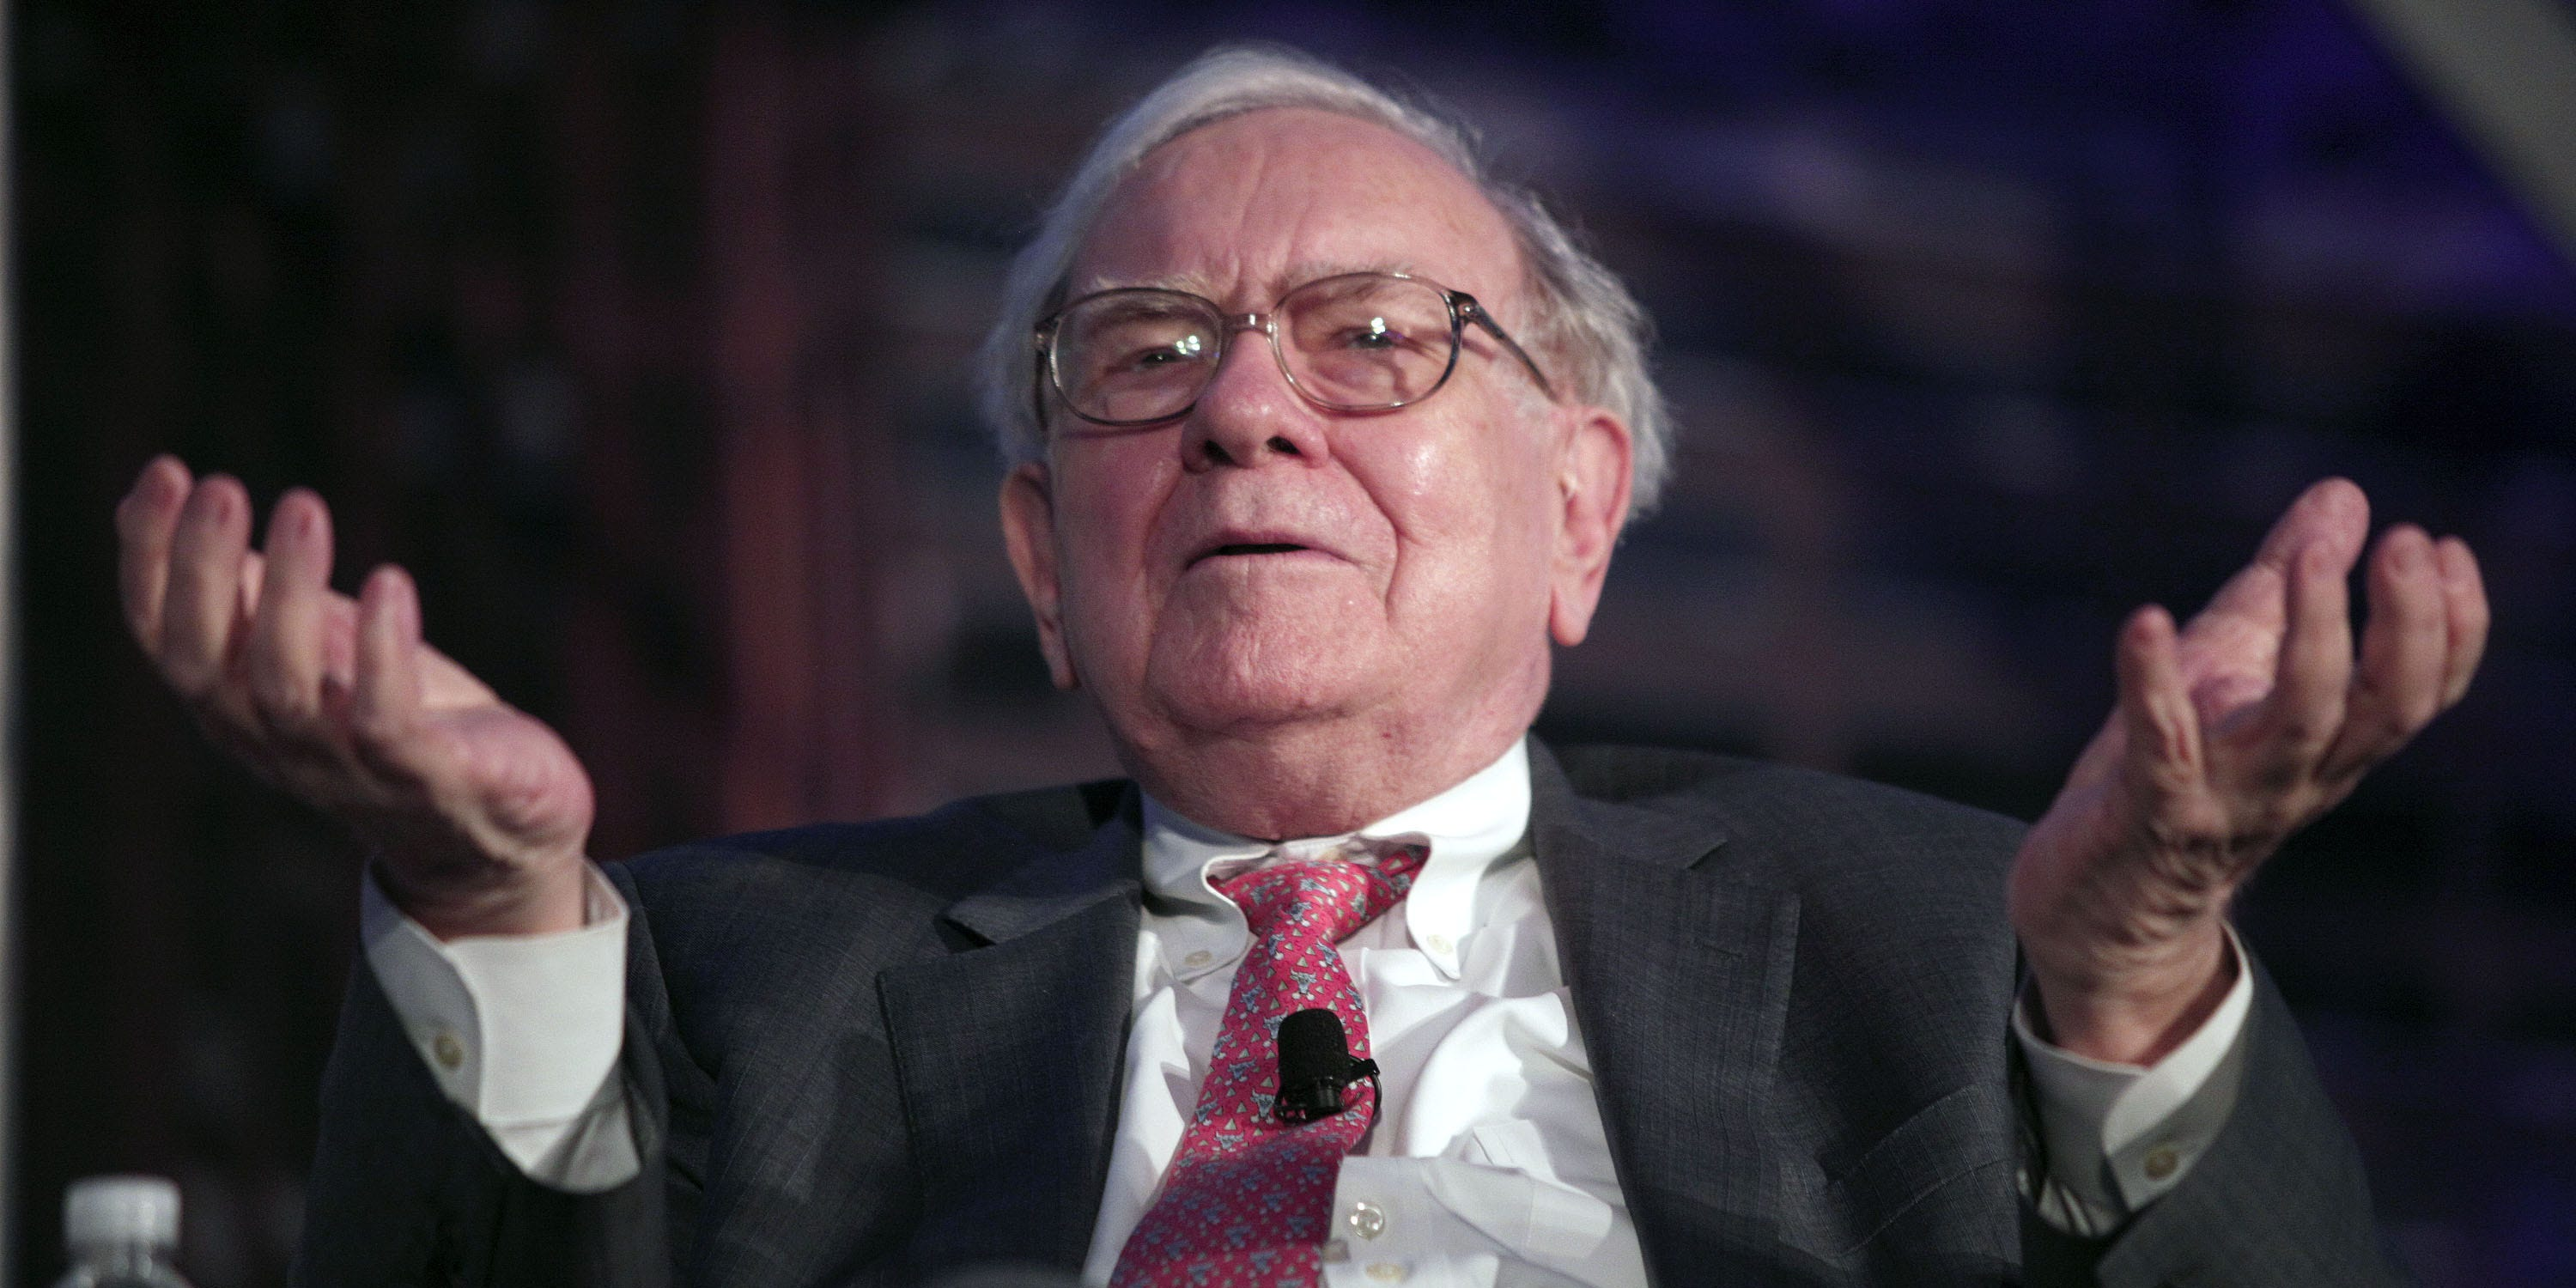 Access here alternative investment news about Why Warren Buffett's $570M Bet On Snowflake Is Rarer Than Any Unicorn | Markets Insider